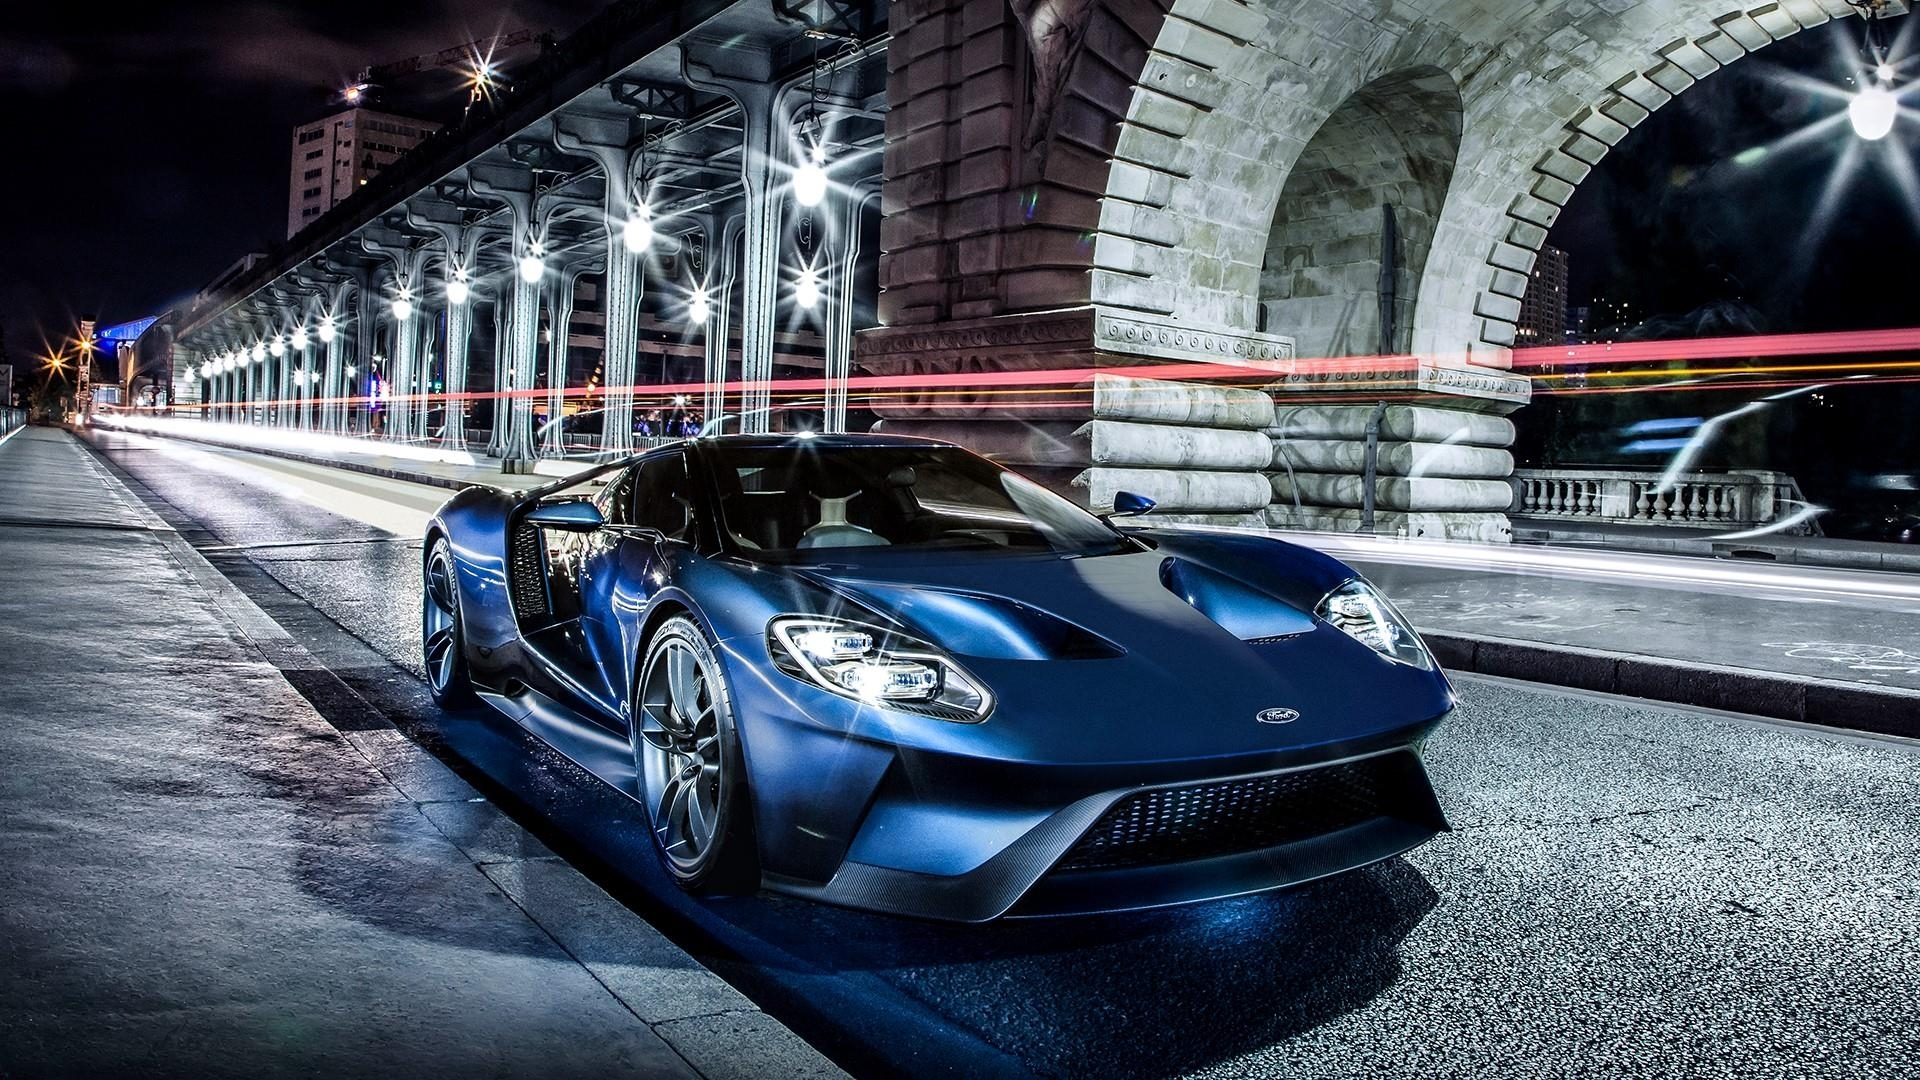 ford gt wallpaper | wallpaper studio 10 | tens of thousands hd and